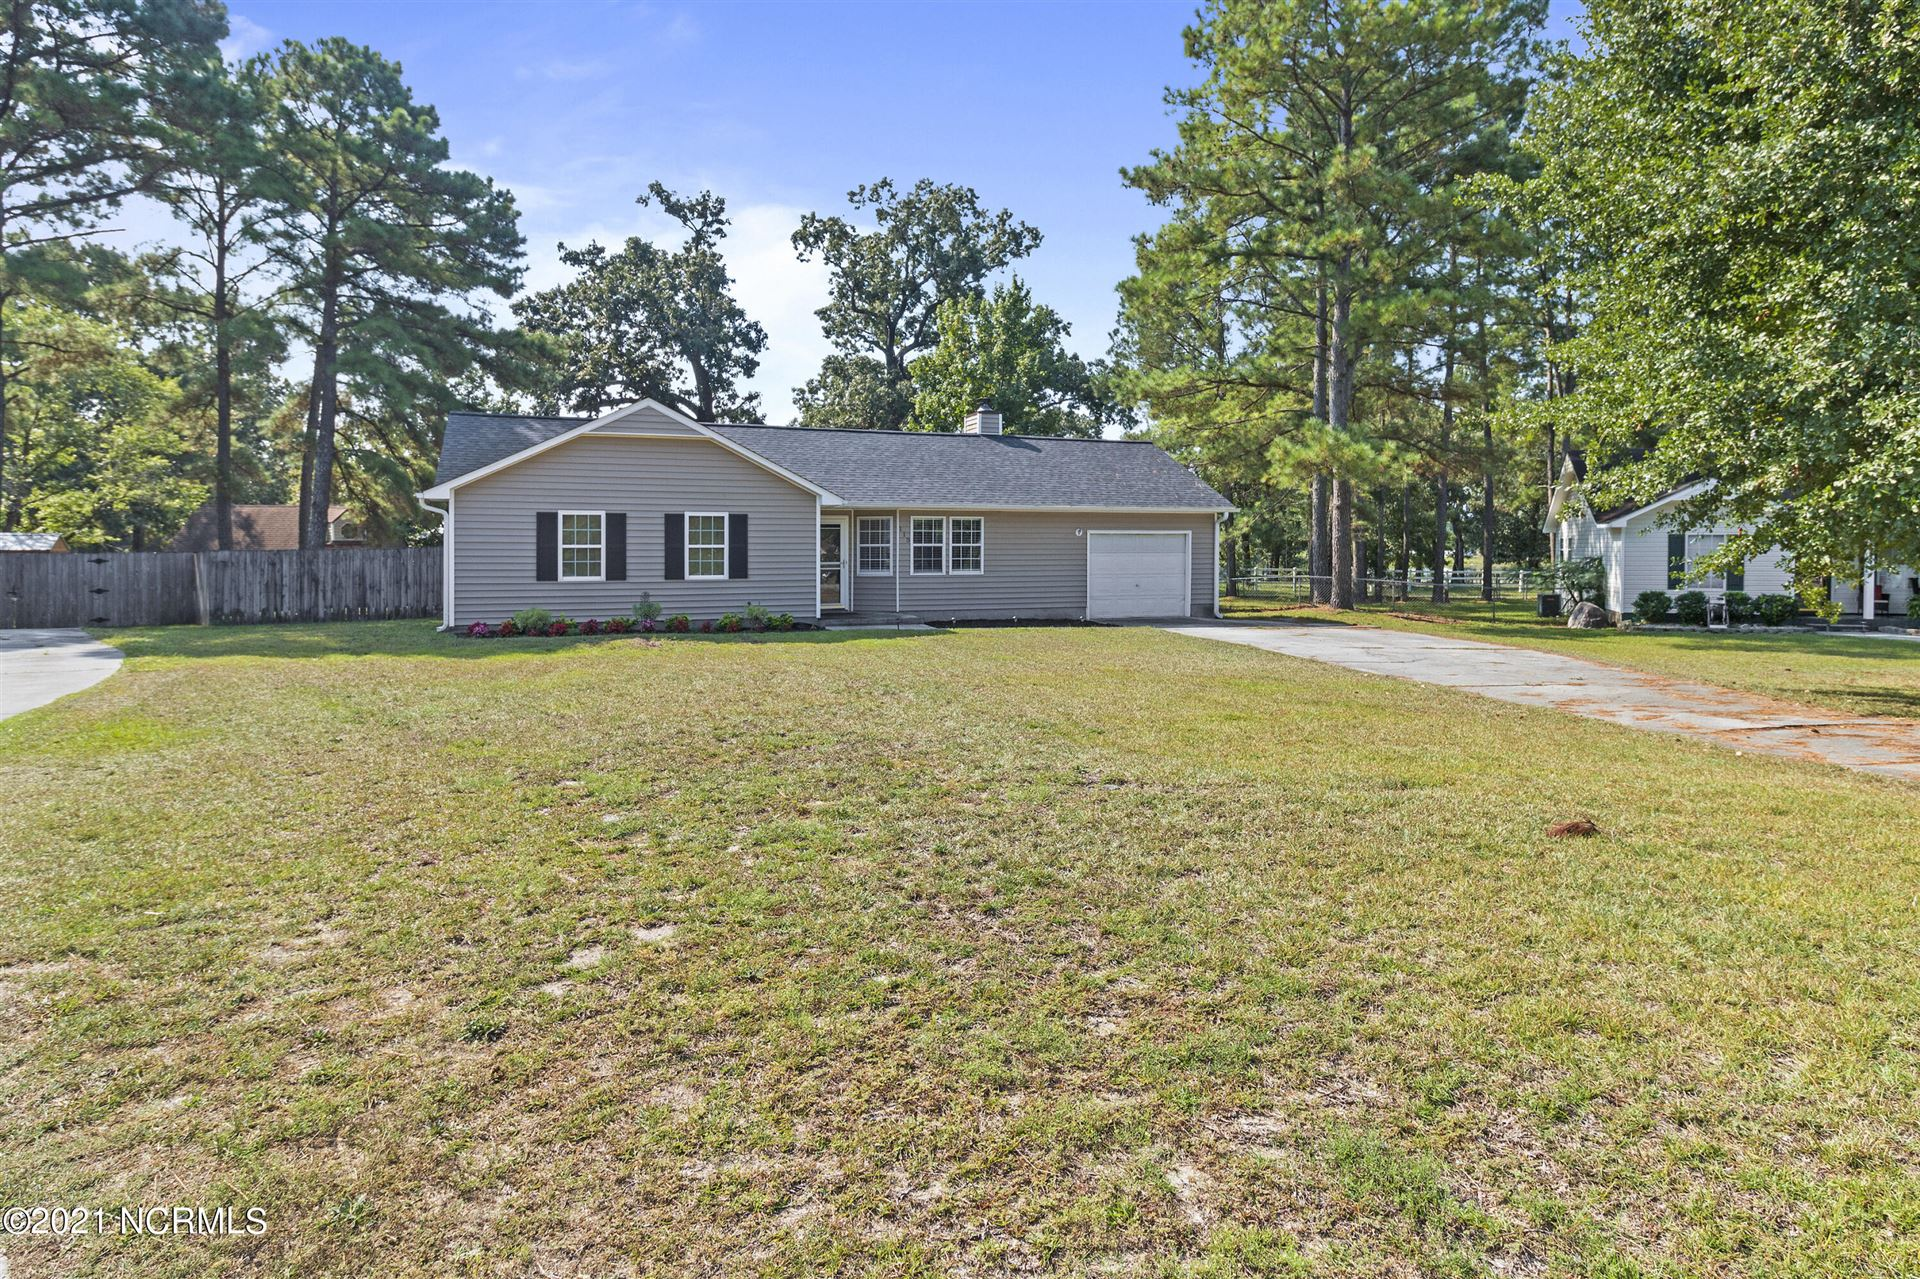 Photo of 115 Carriage Hills Court, Richlands, NC 28574 (MLS # 100290440)